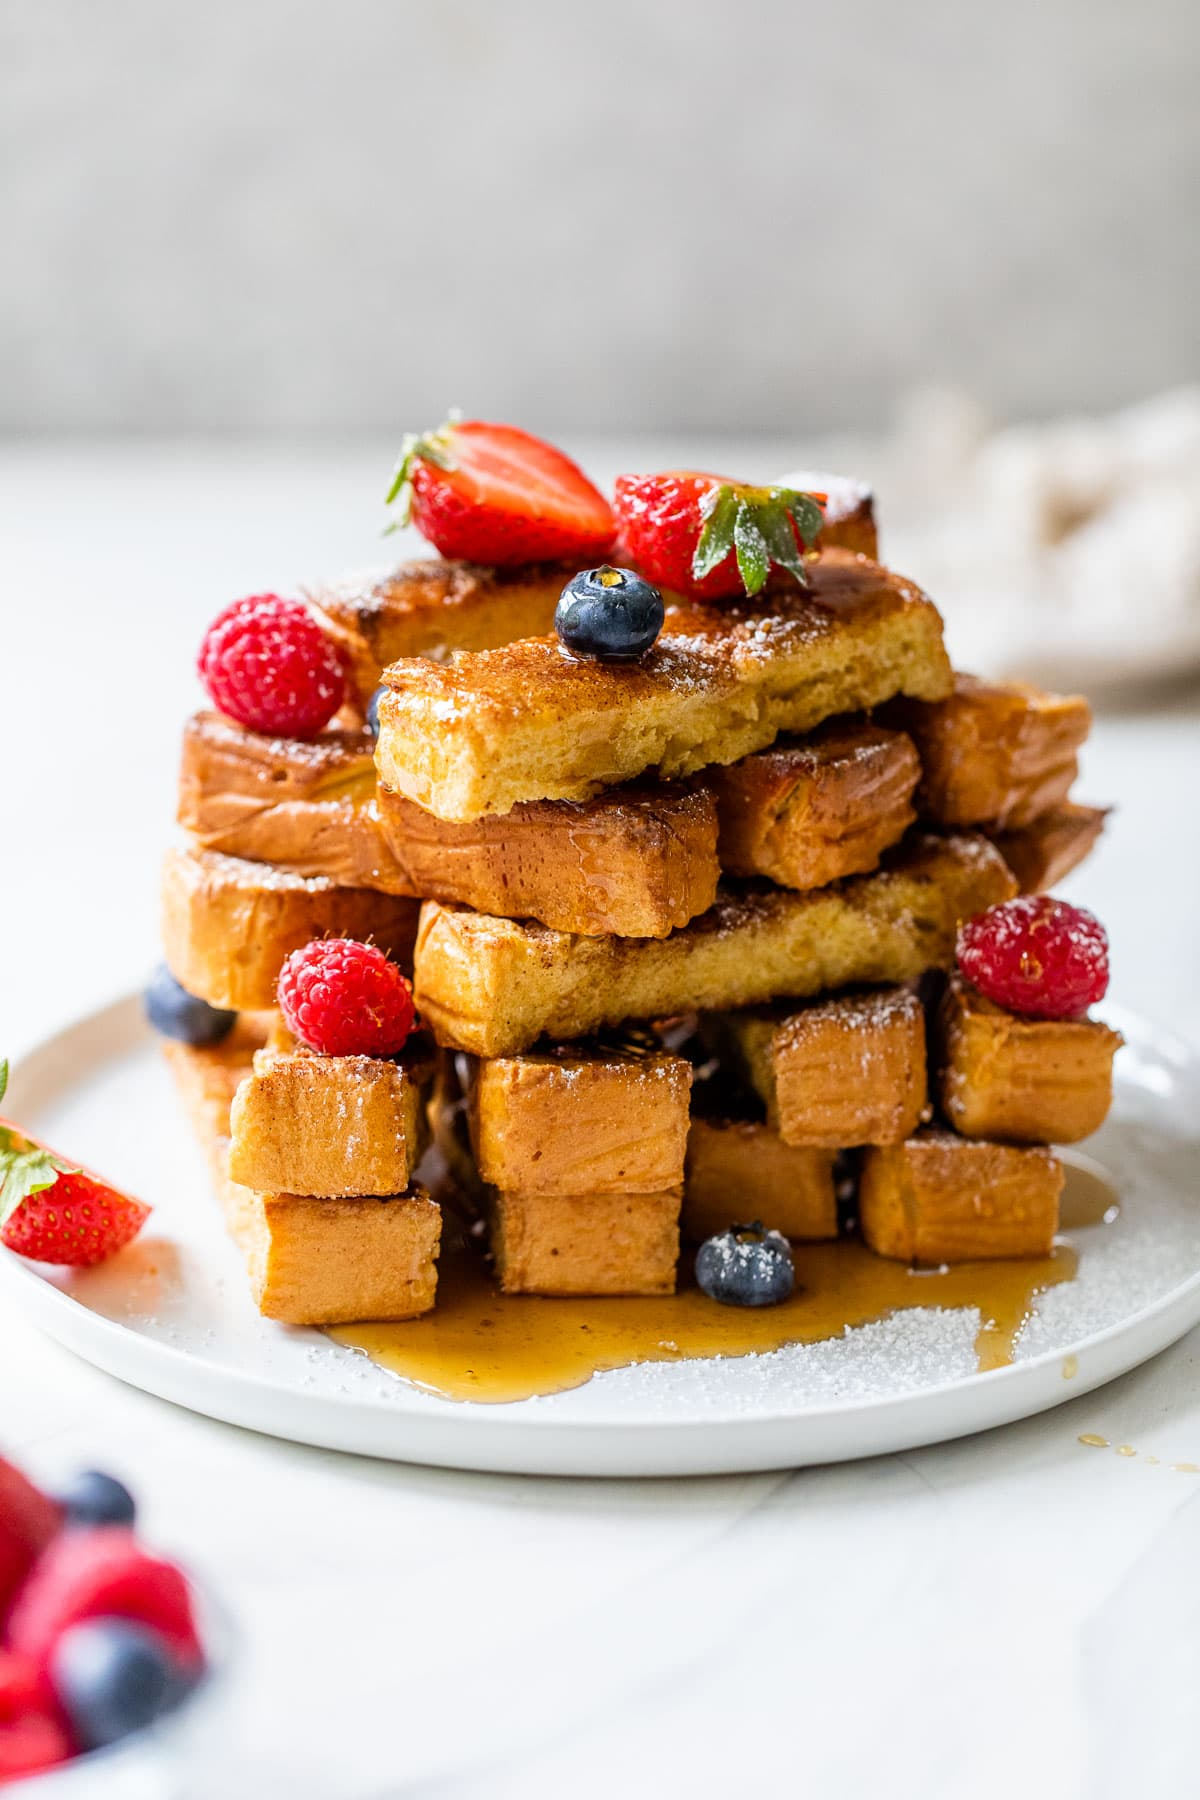 oven baked french toast sticks on a plate with powdered sugar